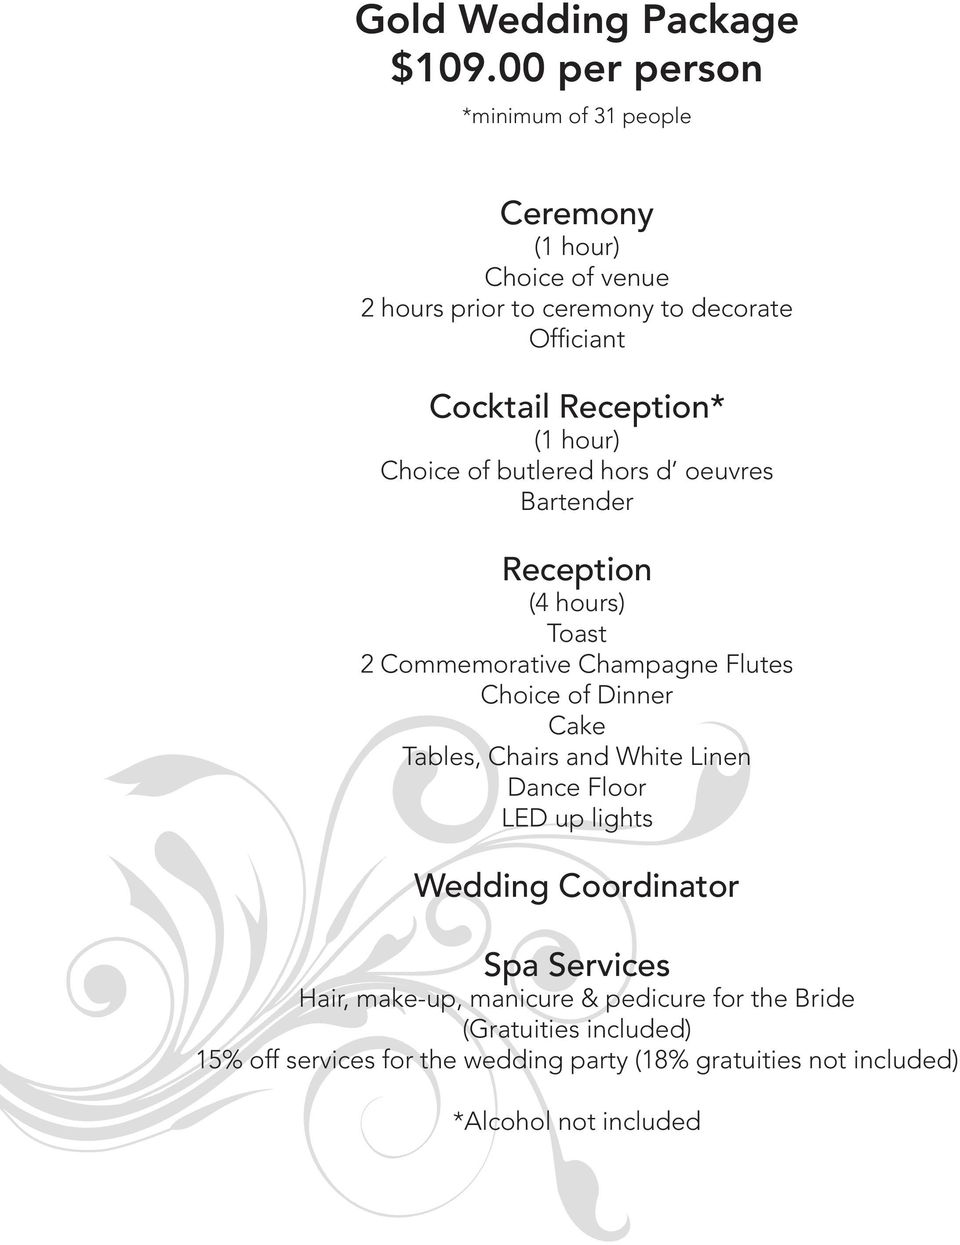 (1 hour) Choice of butlered hors d oeuvres Bartender Reception (4 hours) Toast 2 Commemorative Champagne Flutes Choice of Dinner Cake